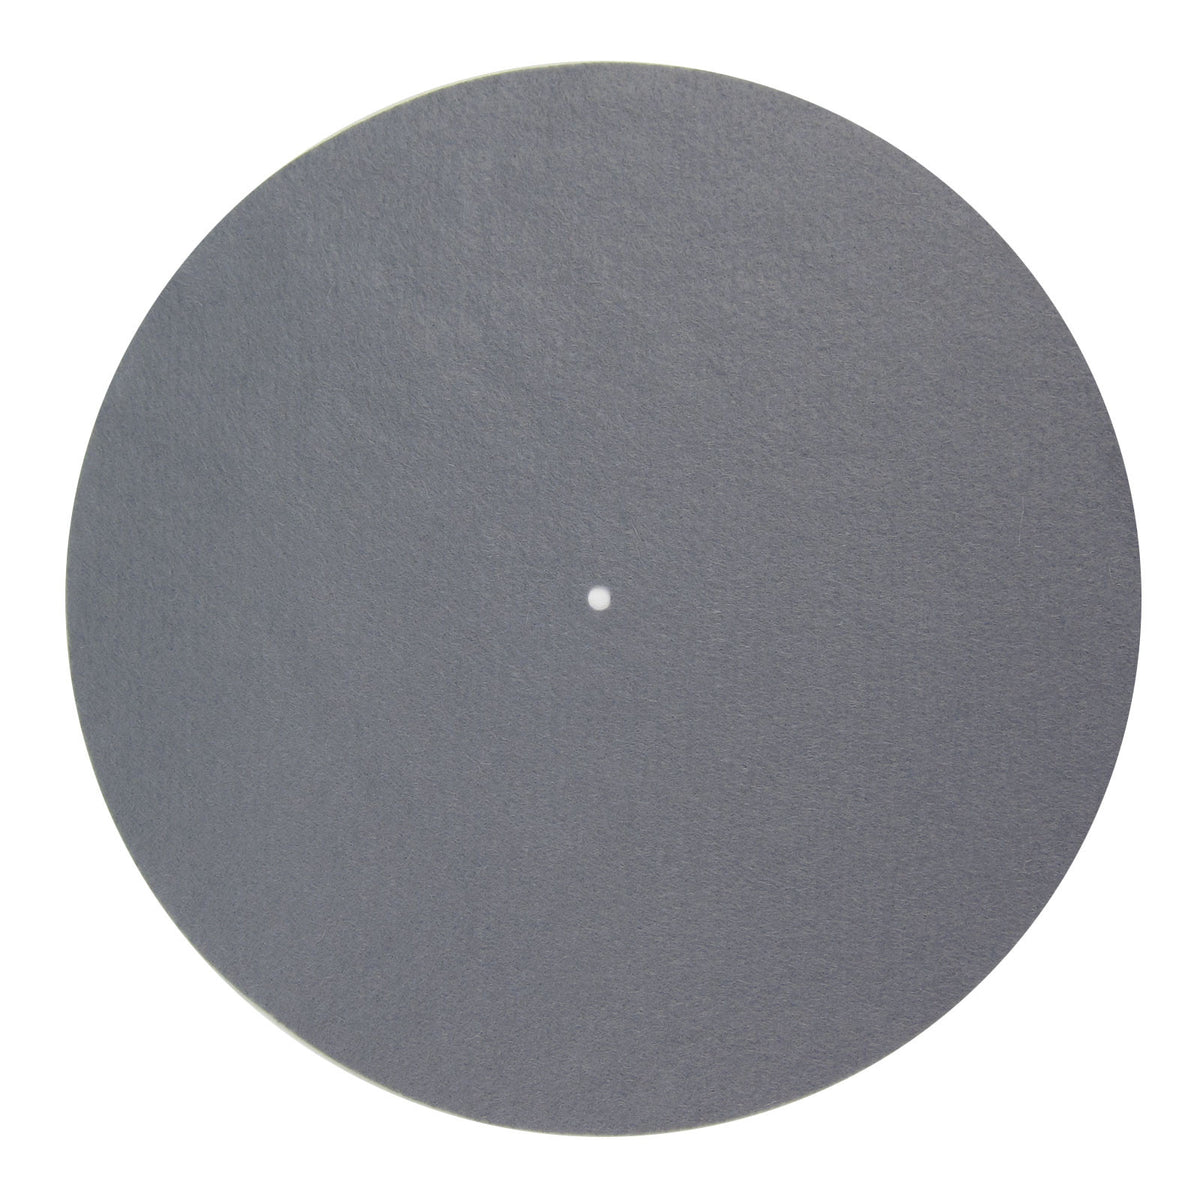 Pro-Ject: Felt Mat - Light Grey